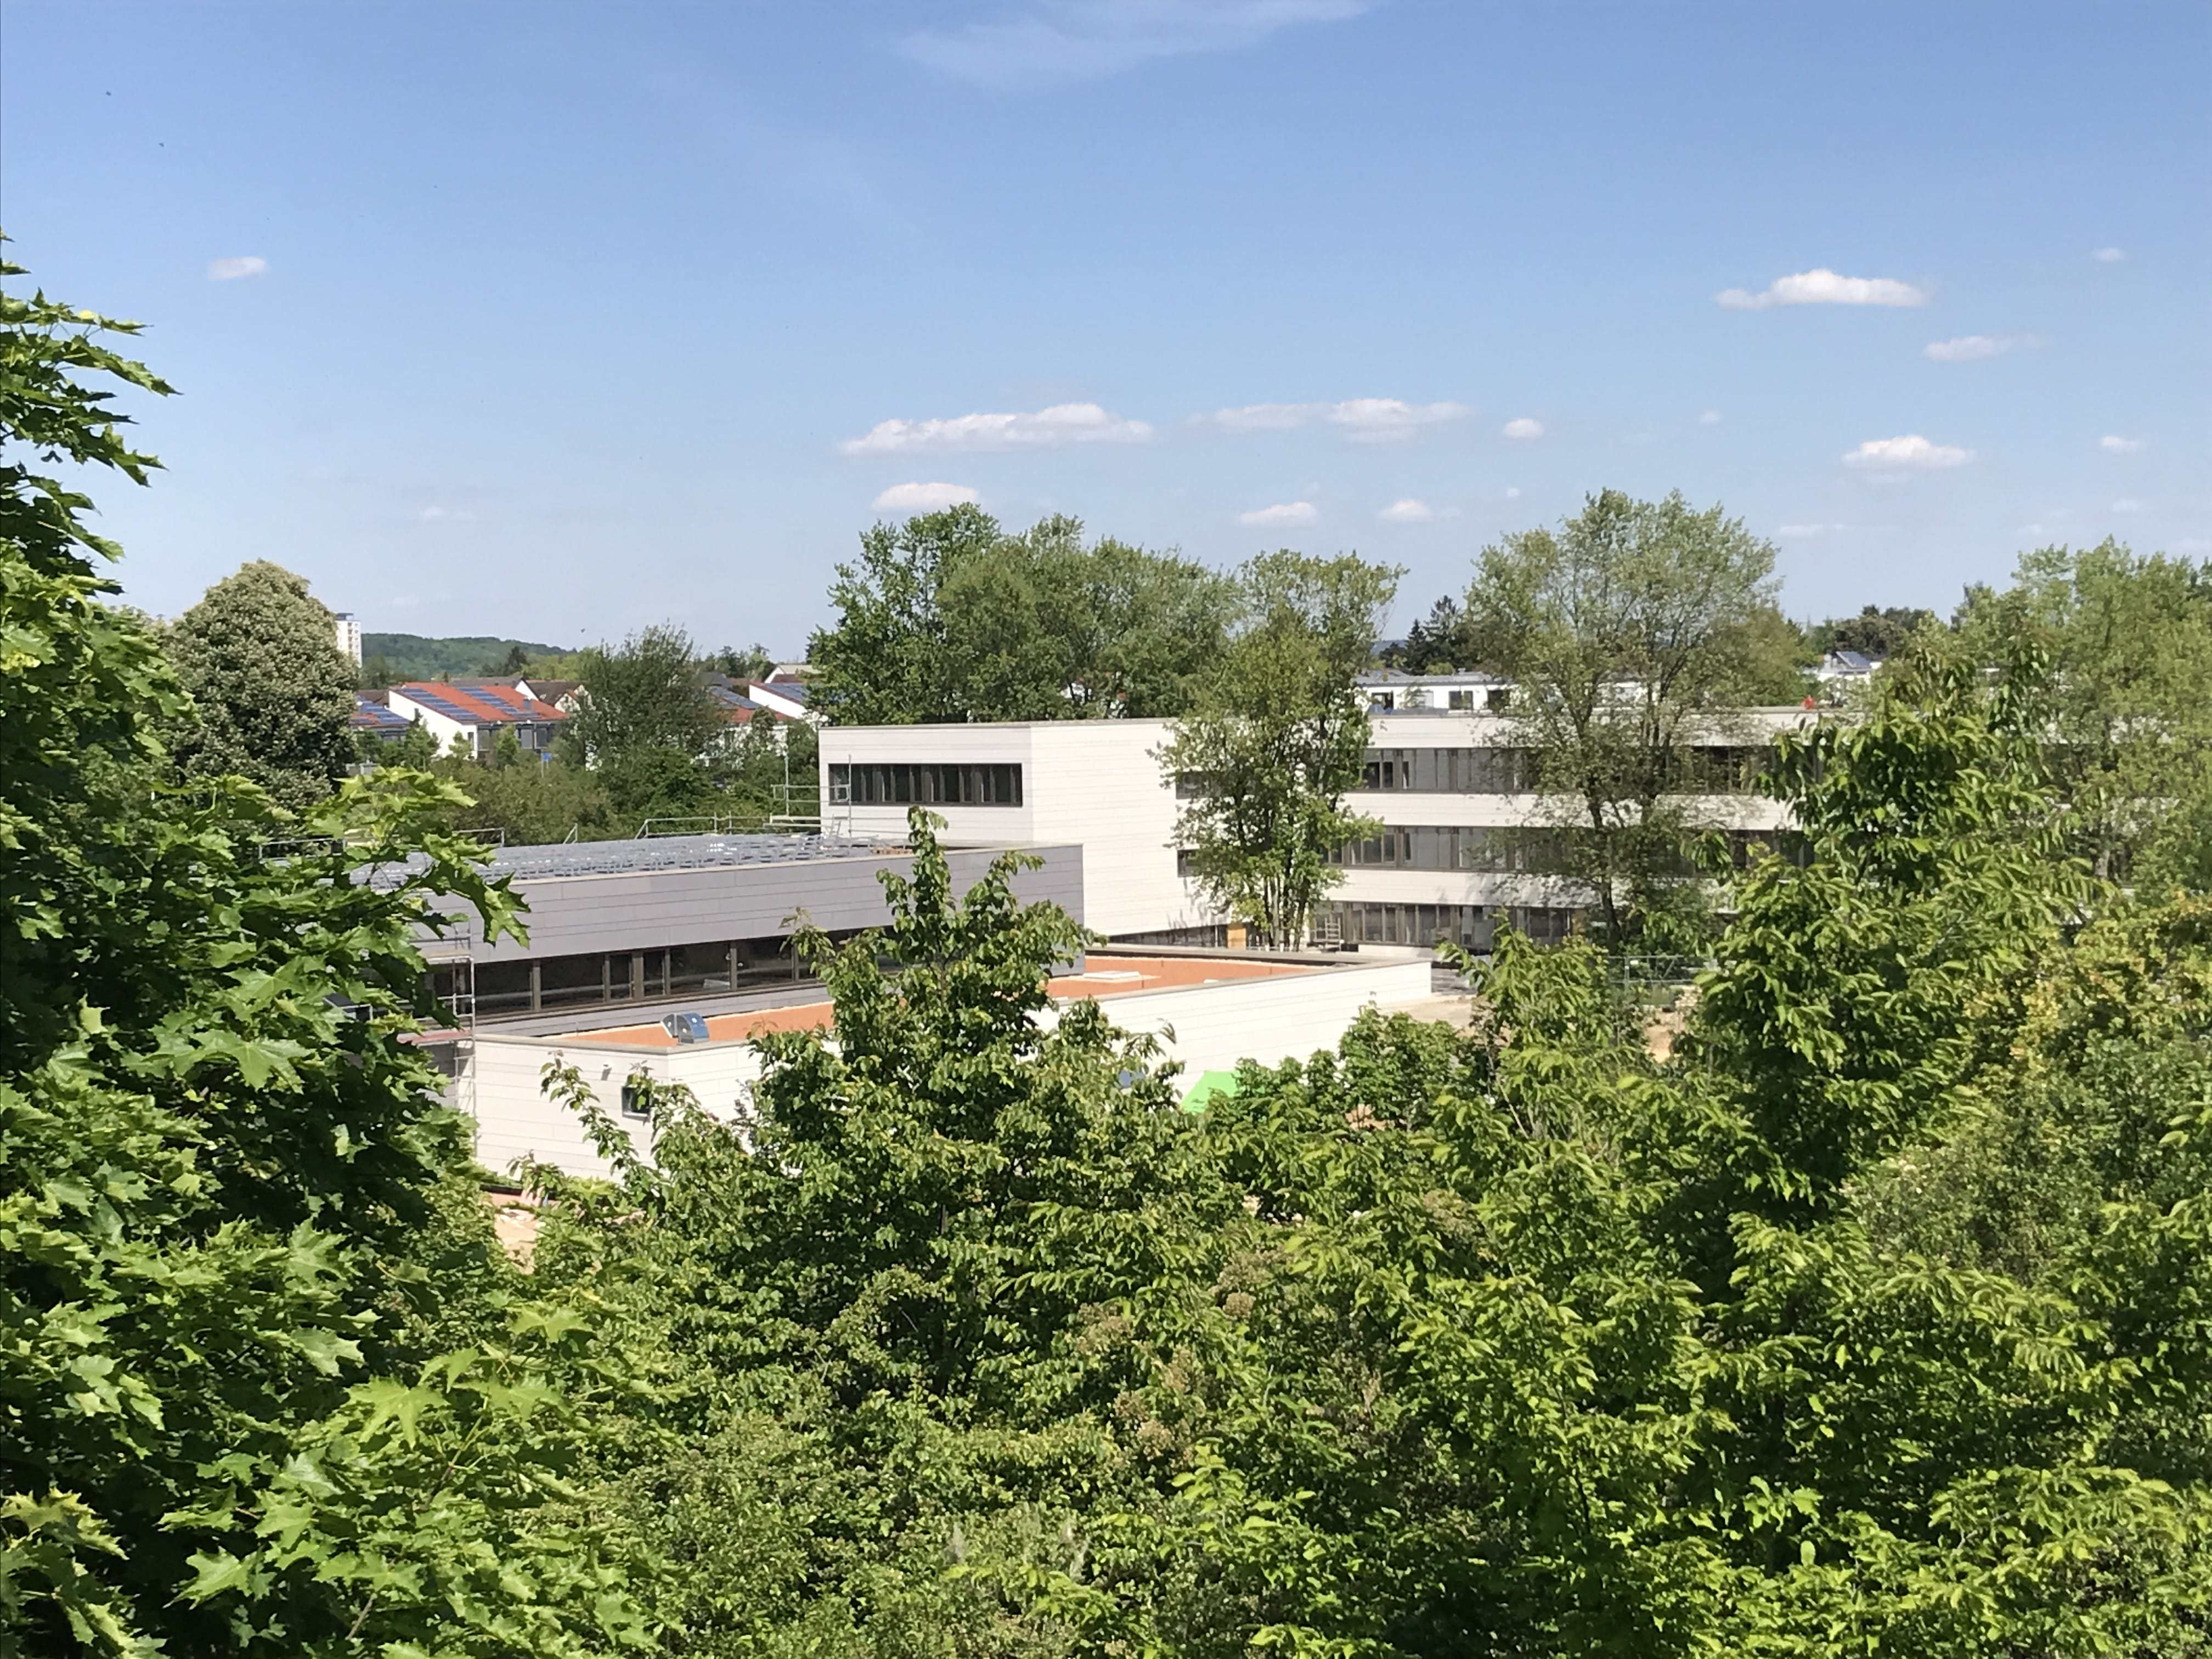 The new SIS Regensburg school building